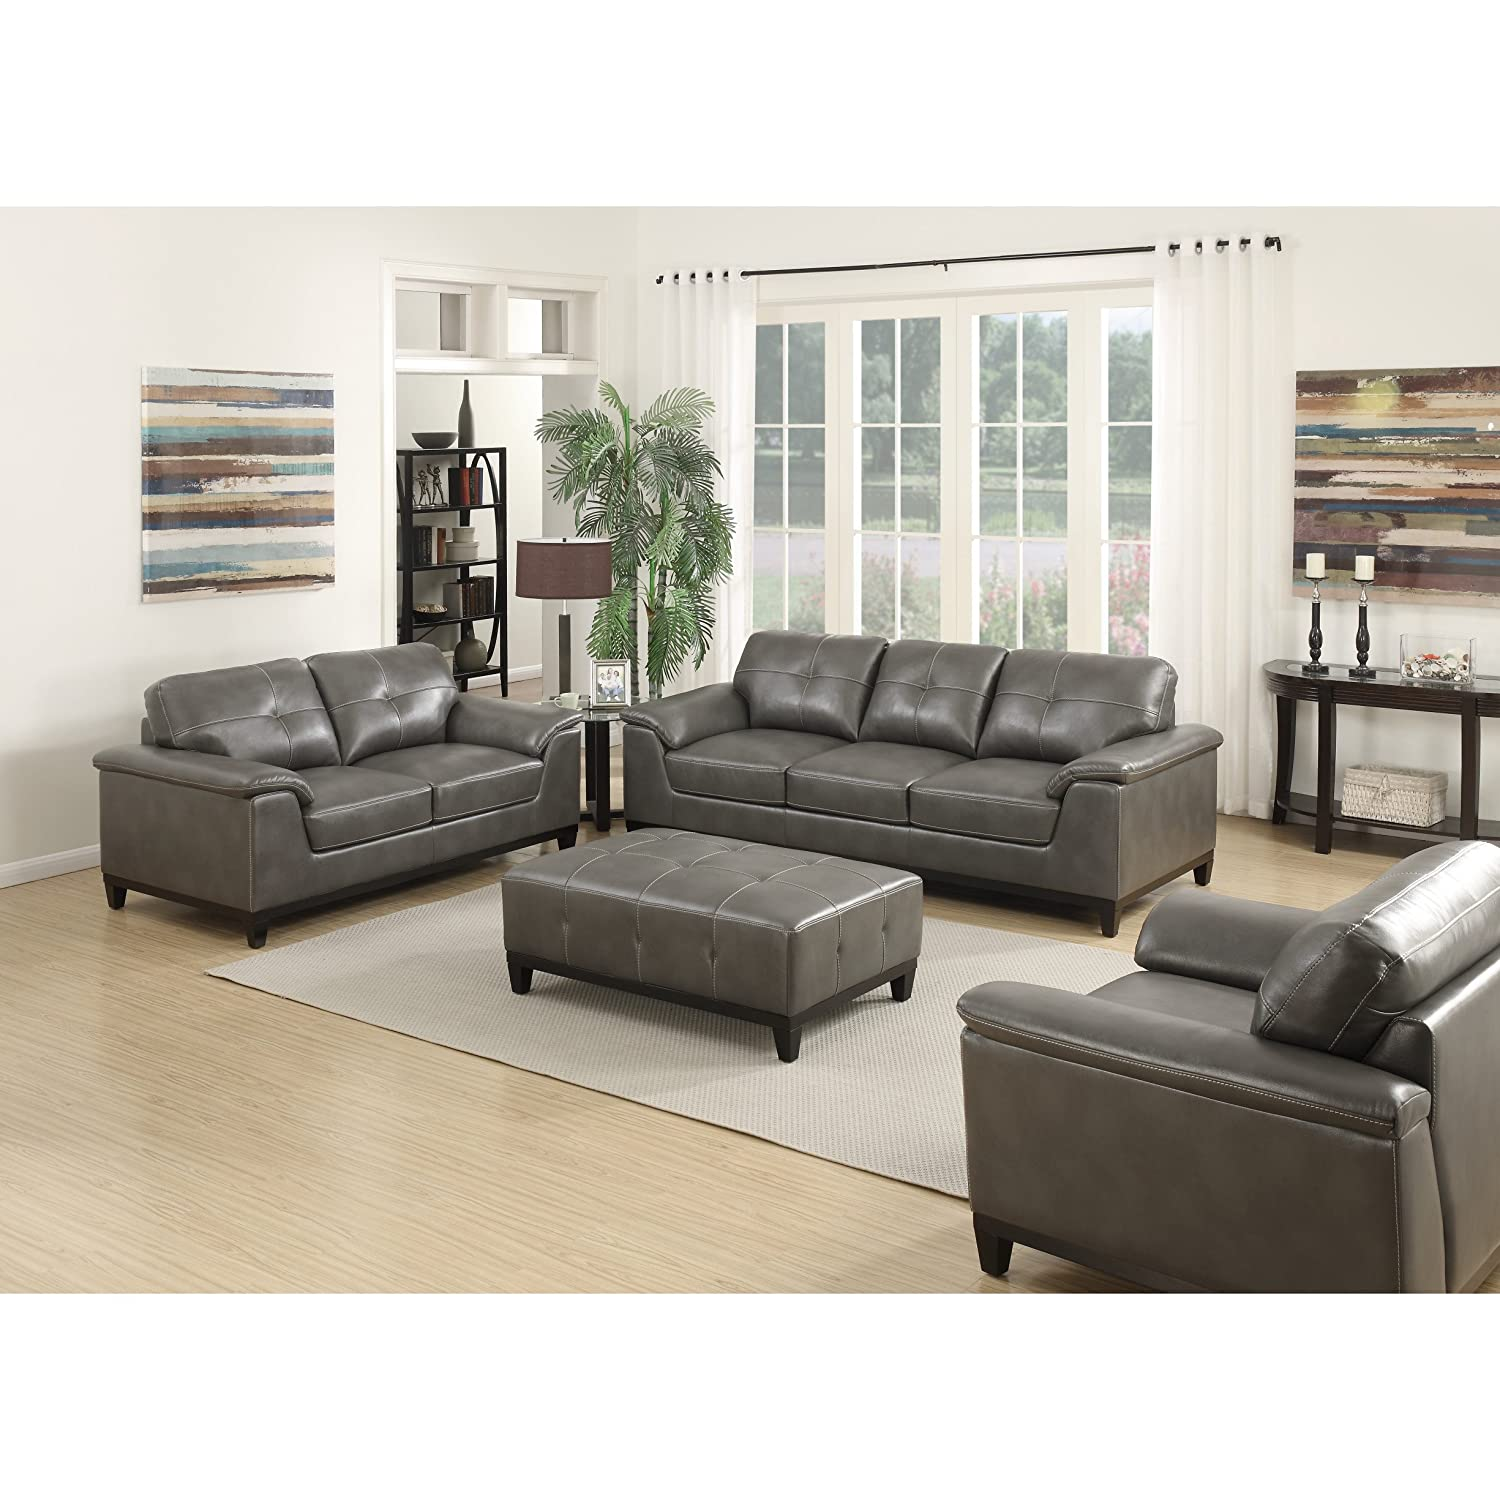 Amazon com emerald home marquis gray sofa with faux leather upholstery padded arms and contrast stitching kitchen dining